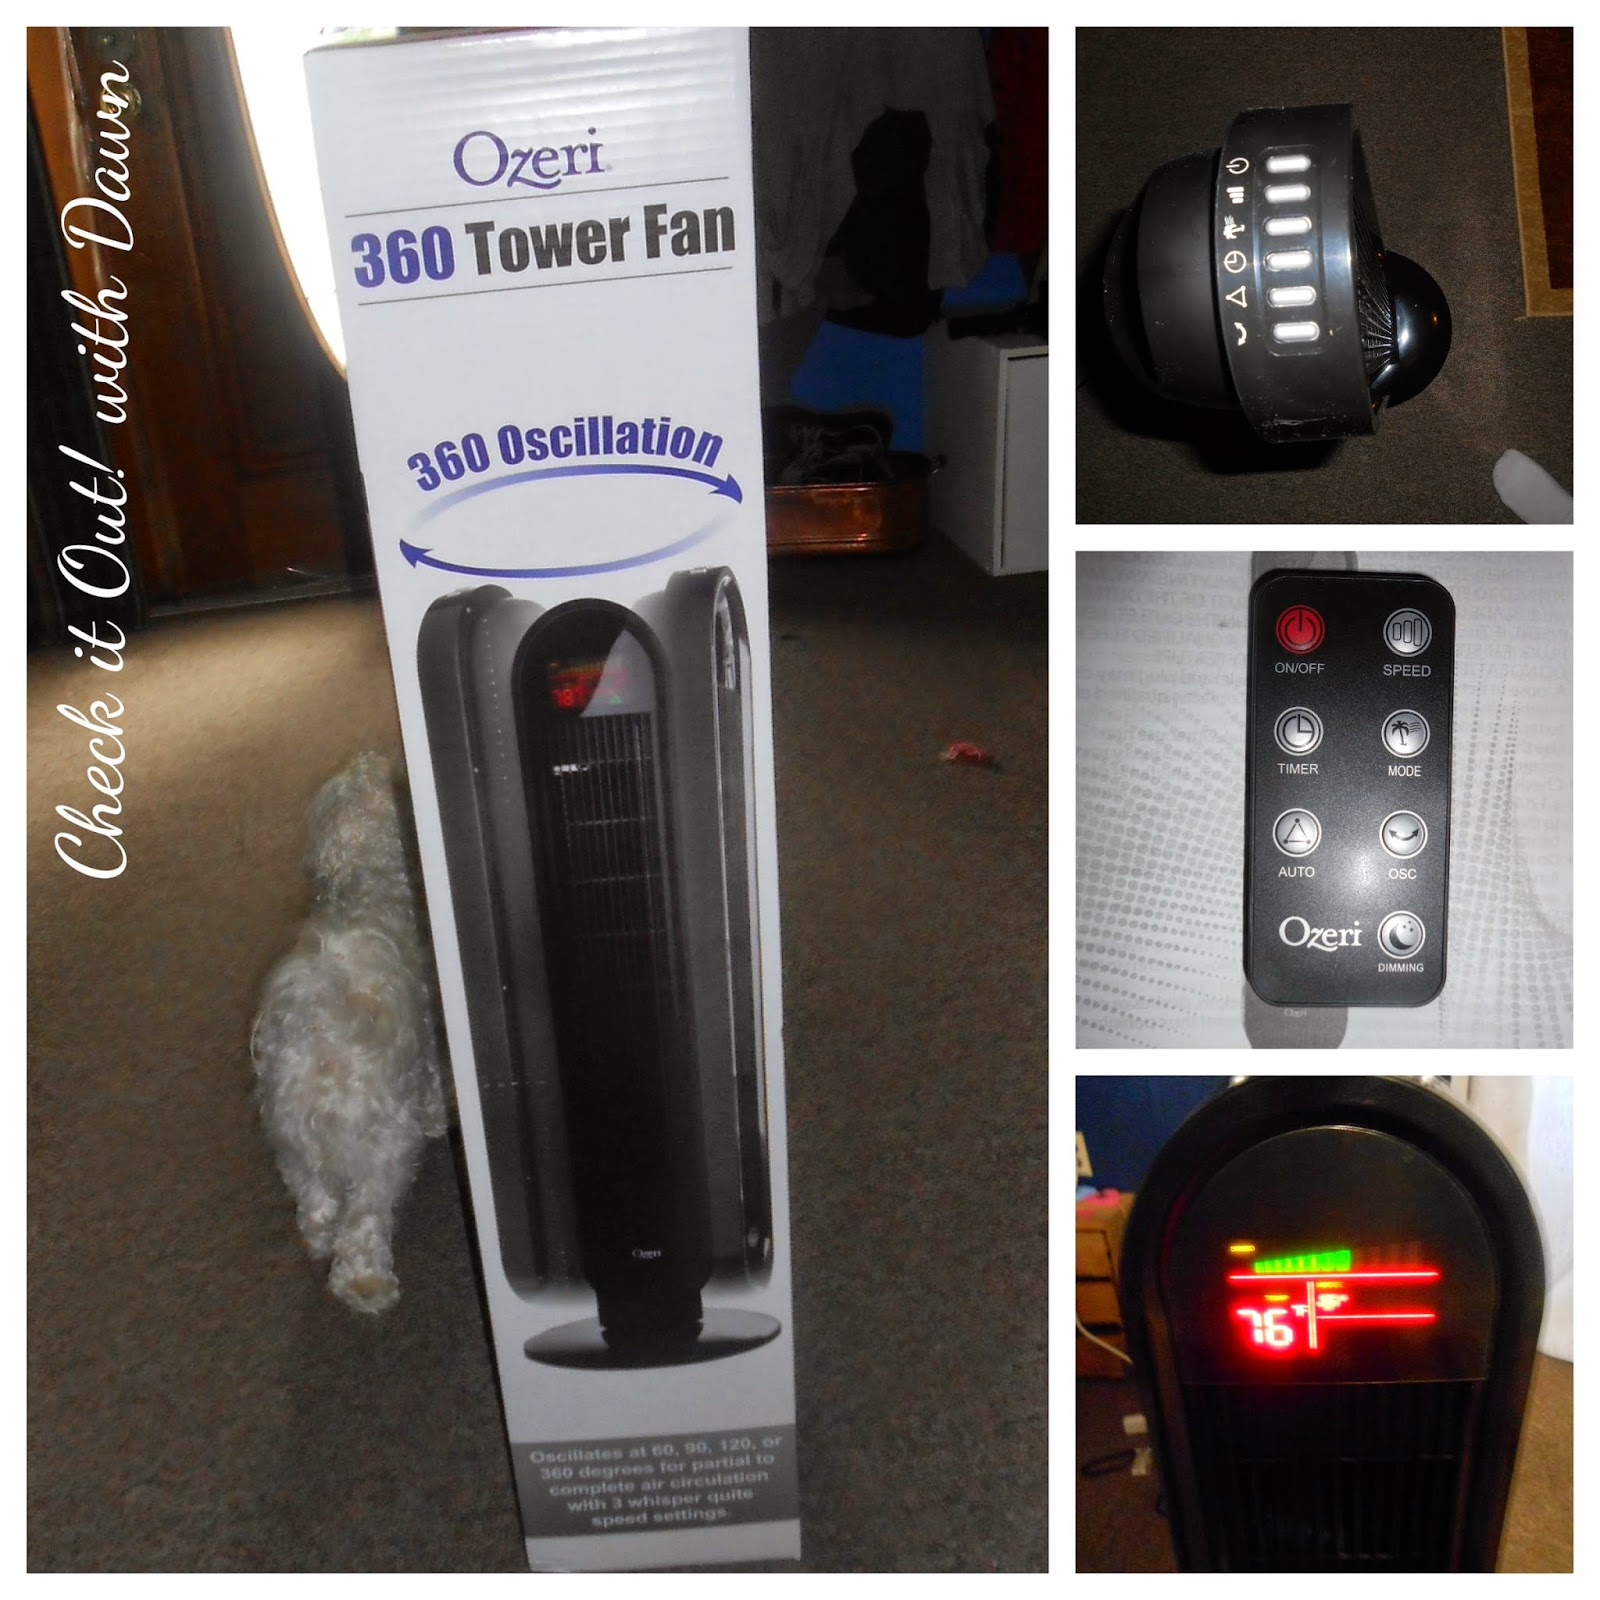 Check it Out! with Dawn: Product Review: Ozeri 360 Tower Fan